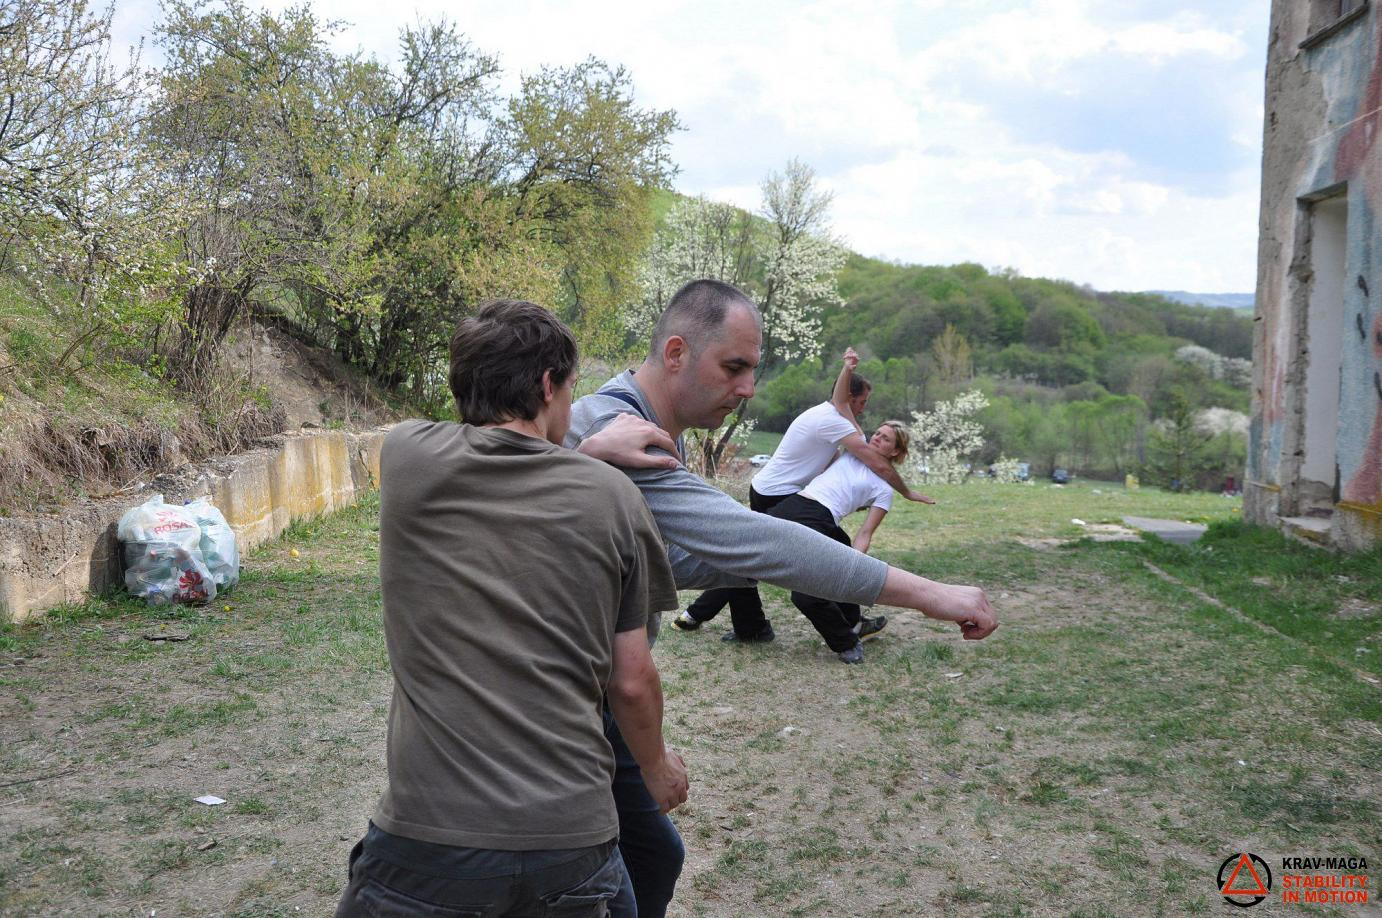 Street Survival - punches and attacks with sticks